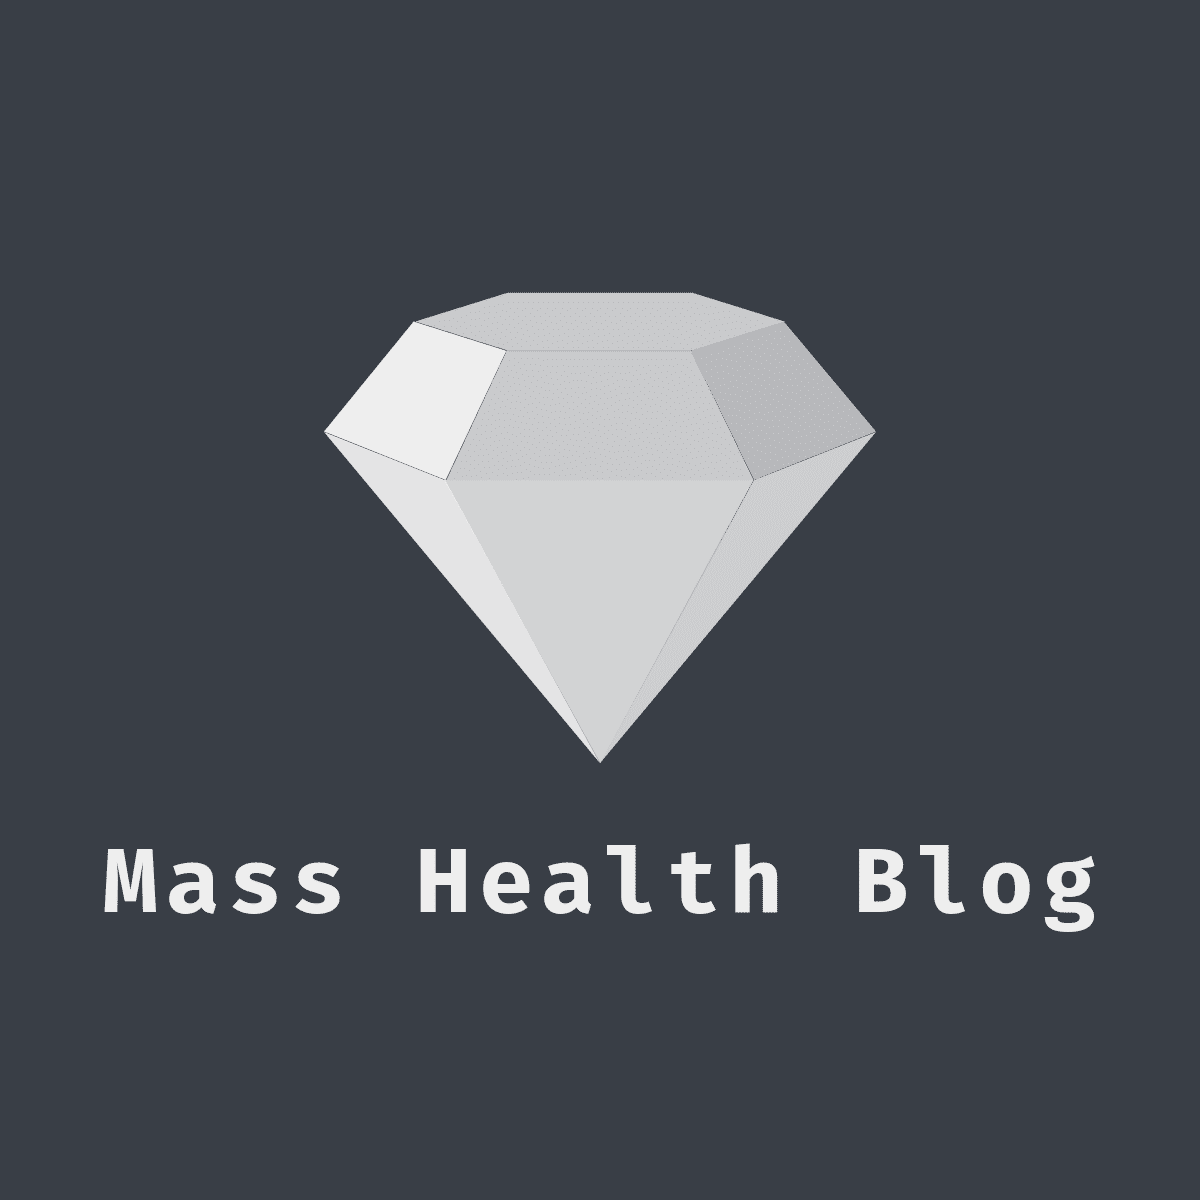 Mass Health Blog